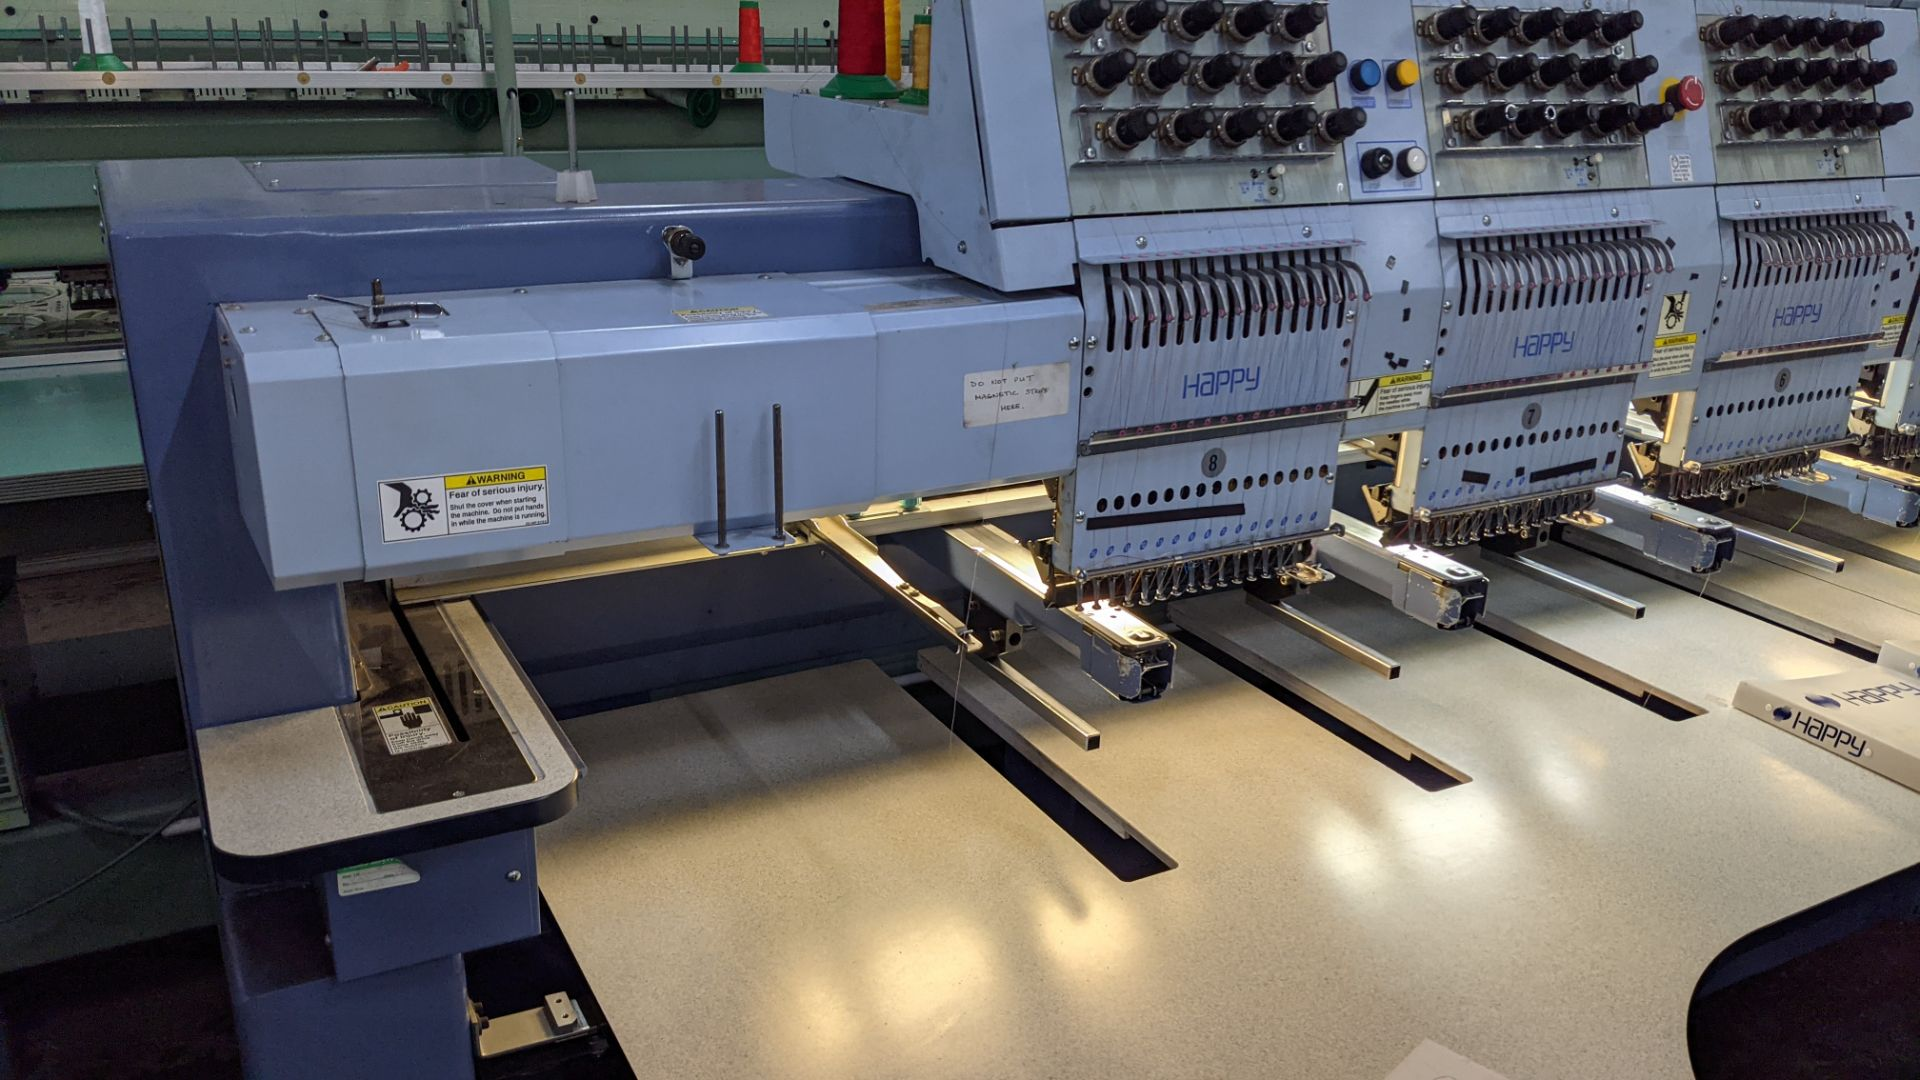 Happy 8 head embroidery machine, model HCG-1508-45TTC, 15 needles per head, including frames & other - Image 16 of 27